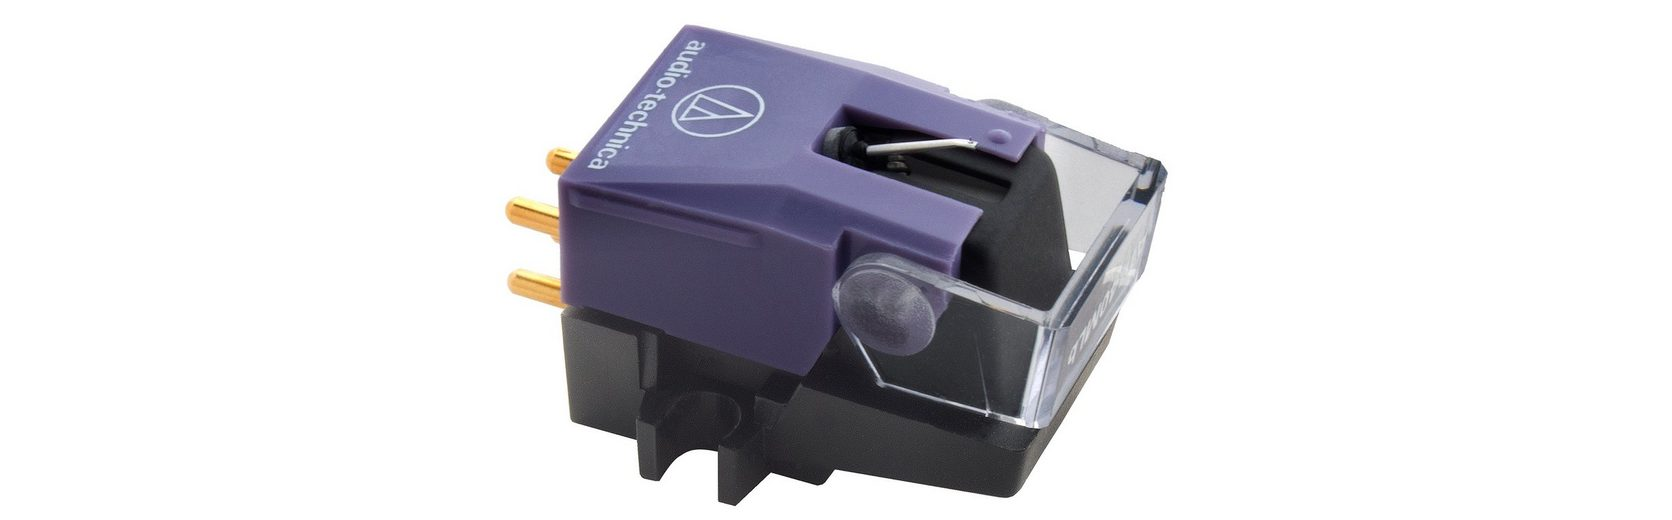 Audio-Technica Moving Magnet Tonabnehmer »AT440MLb«